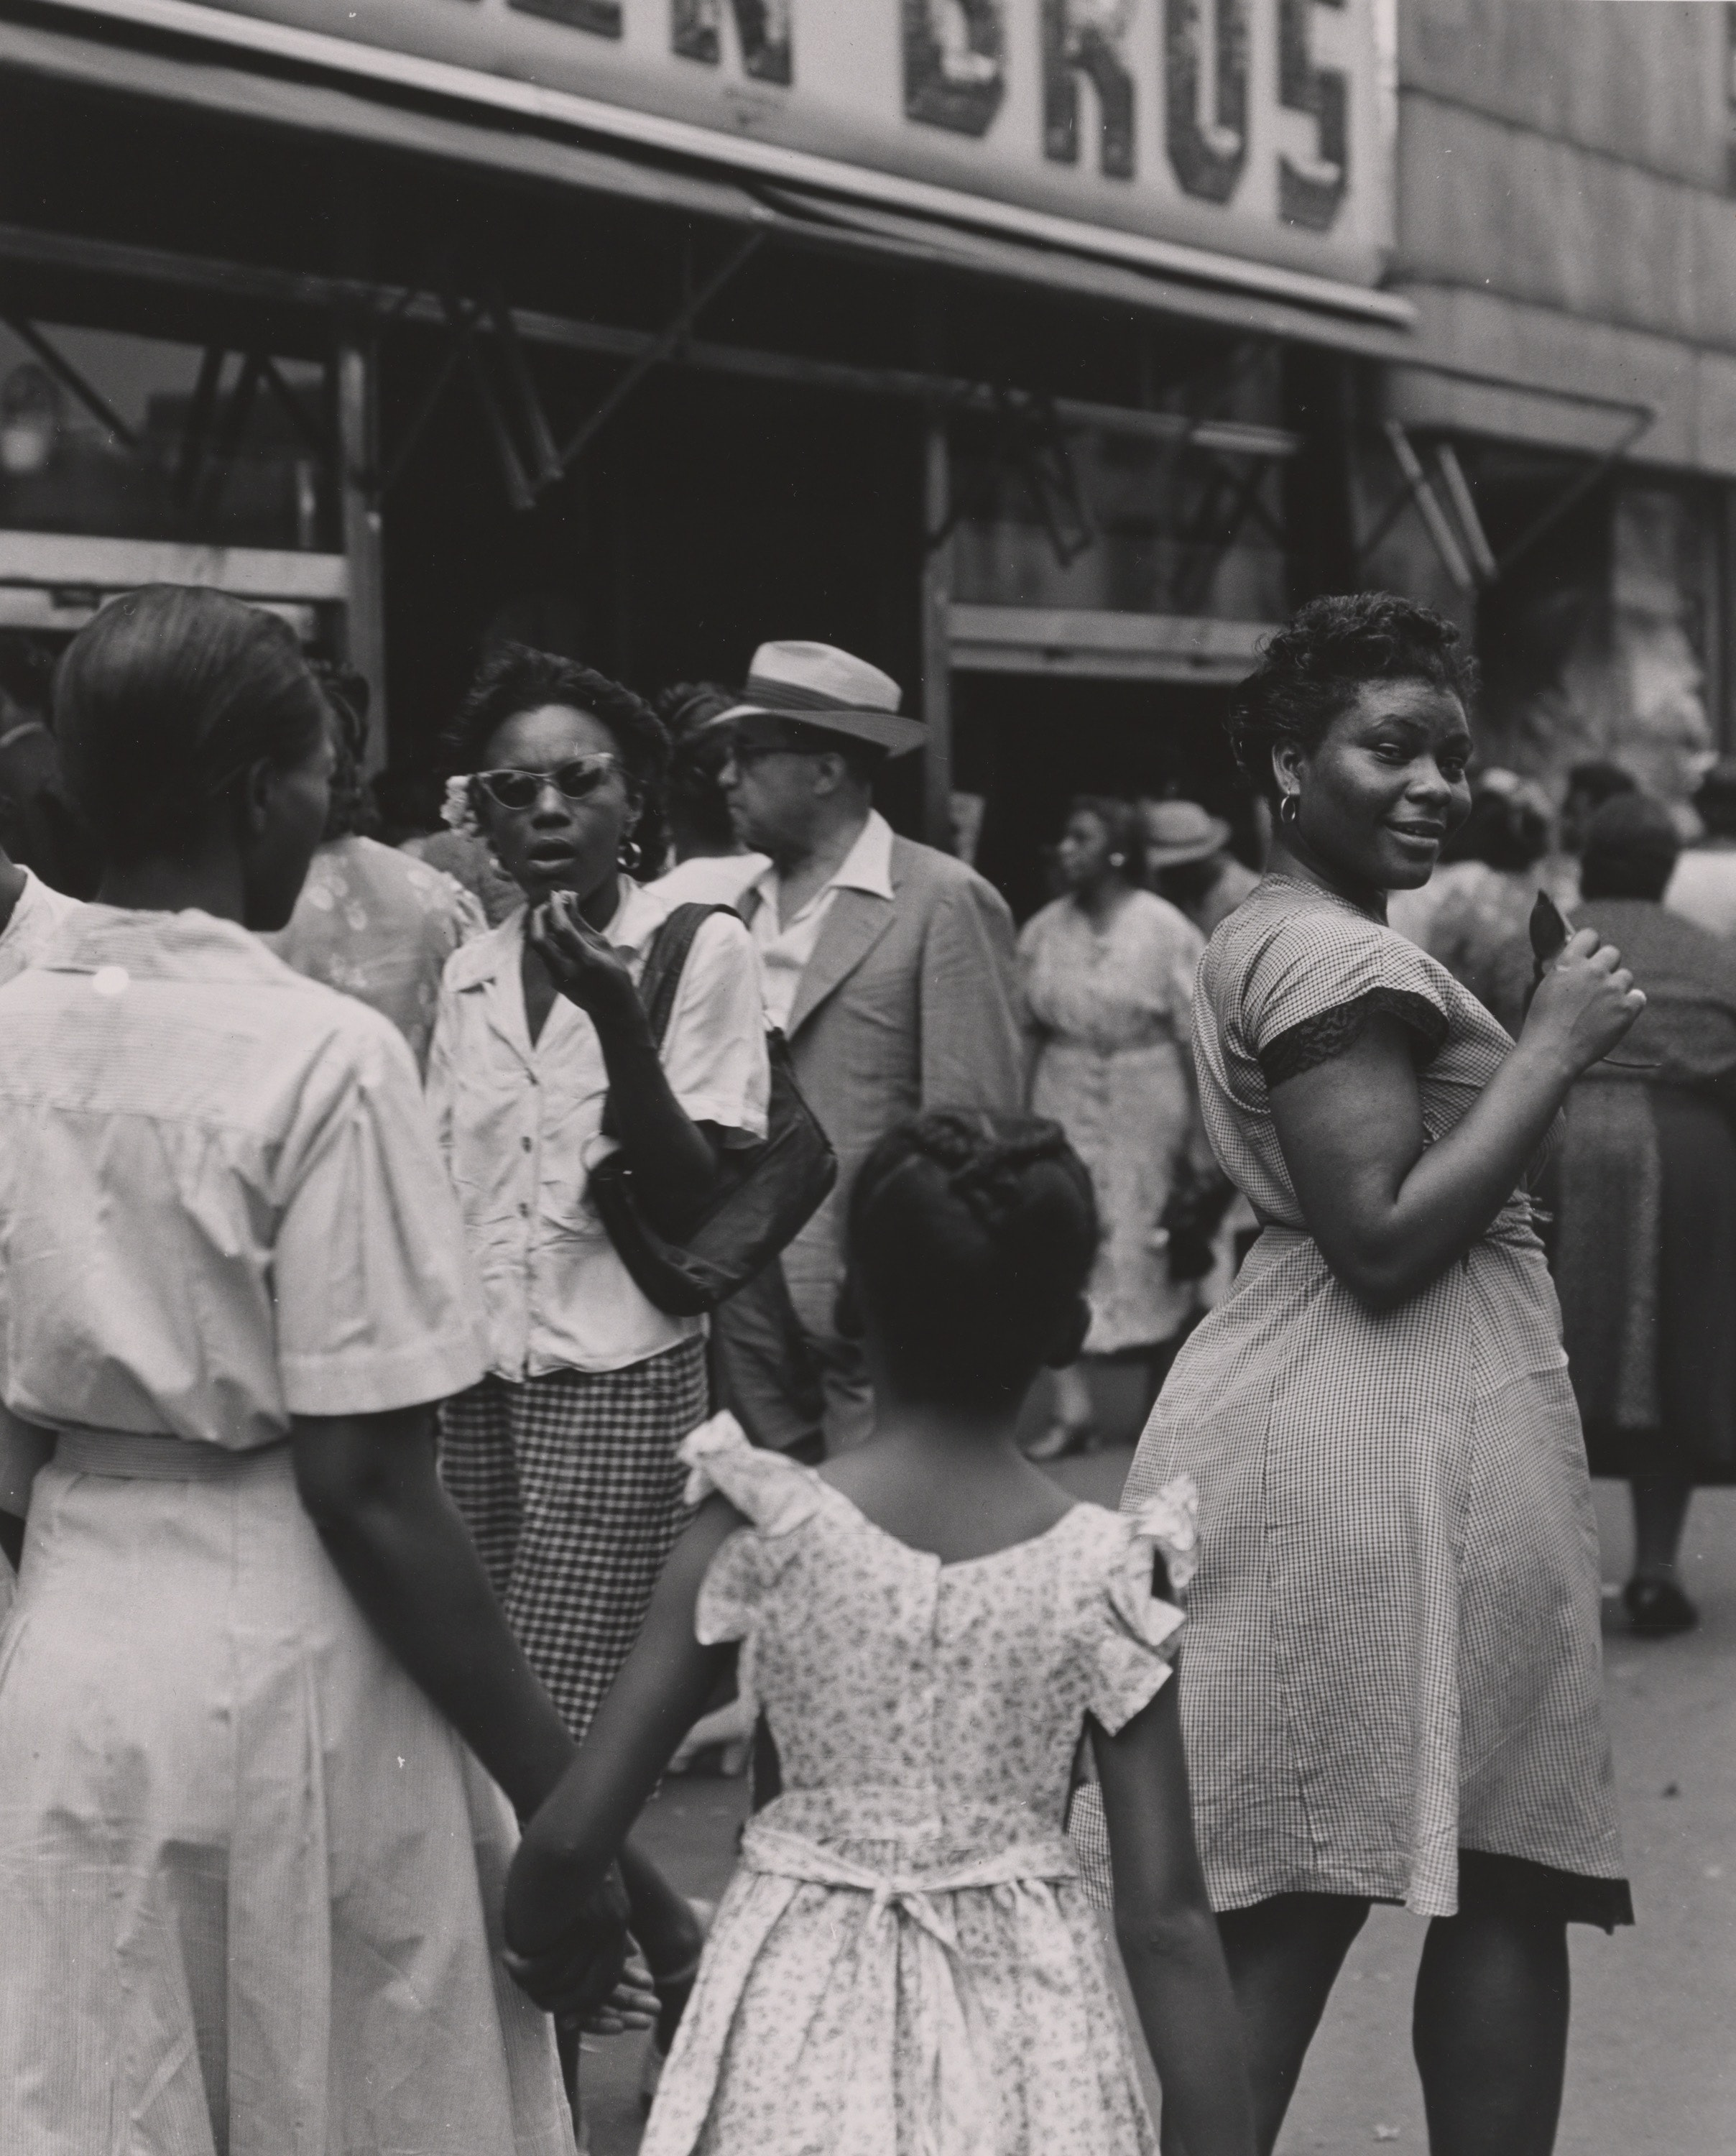 125th Street, Harlem, New York, 1946